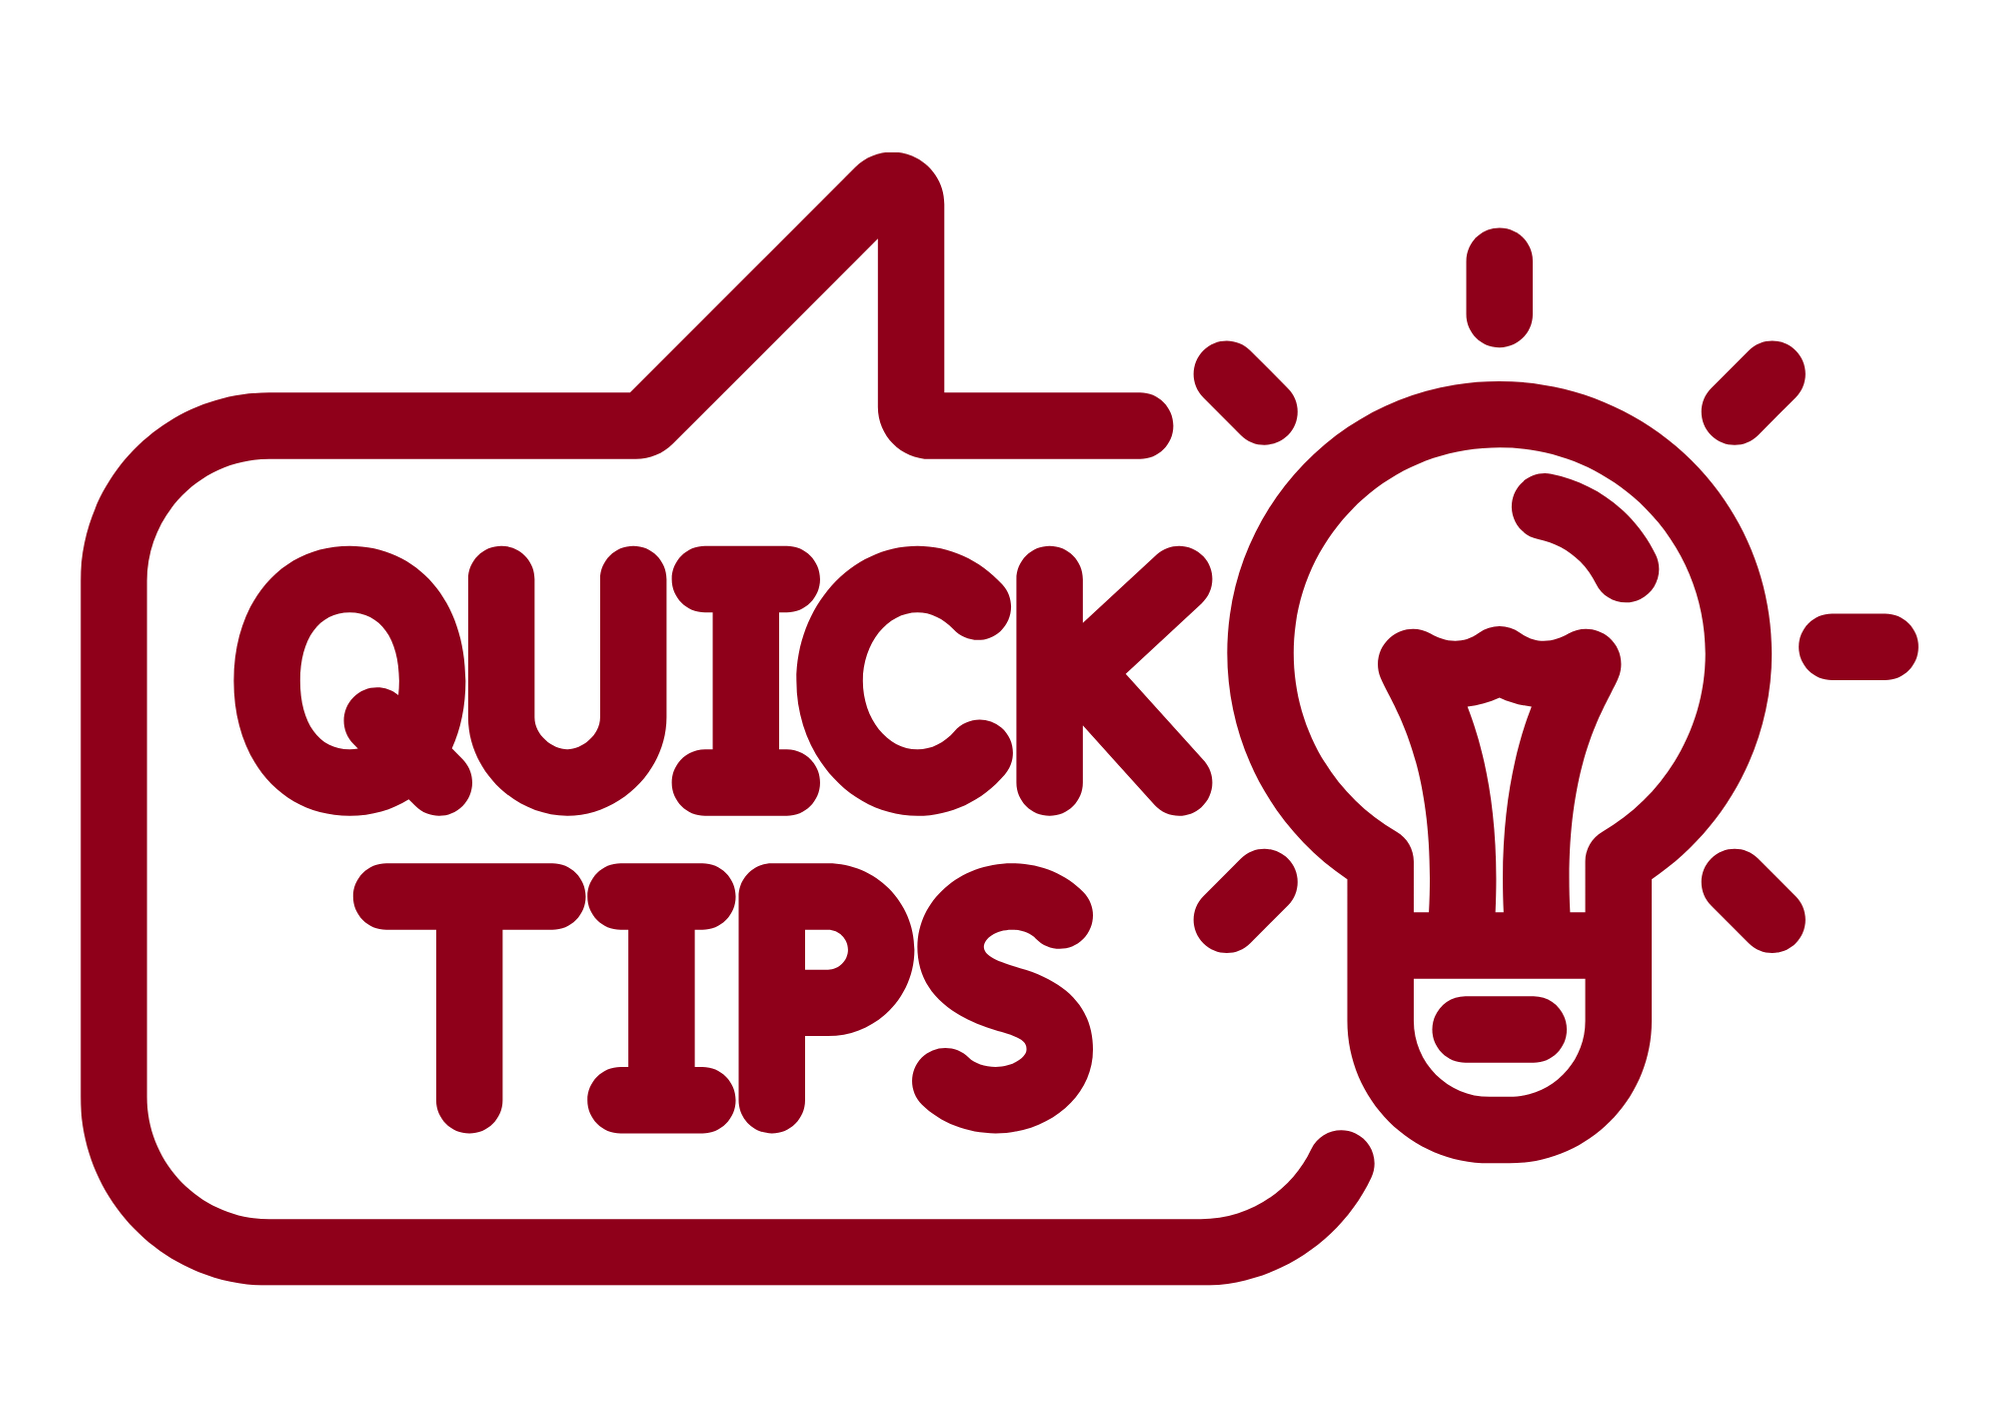 Quick tips image